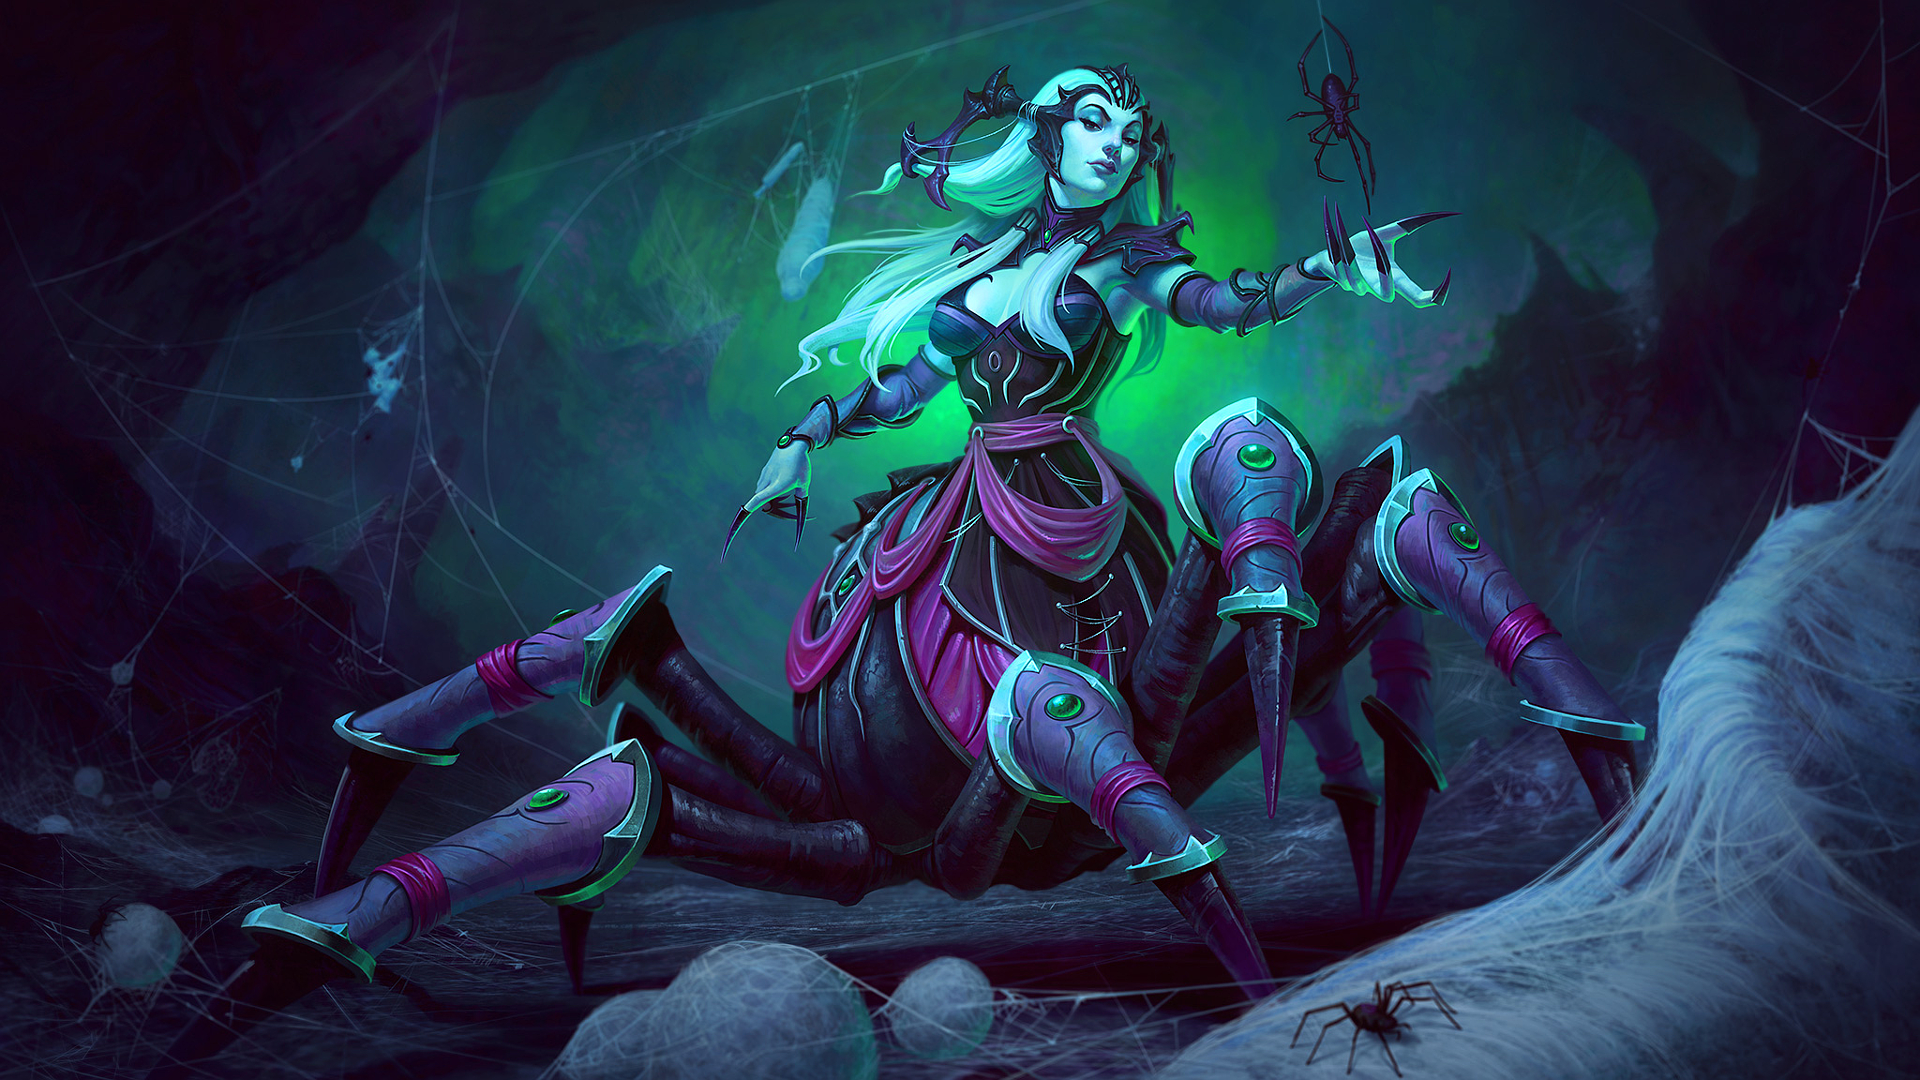 Arachne-New-Model-1920x1080-Need-iPhone-S-Plus-Background-for-IPhoneS-wallpaper-wp3602682